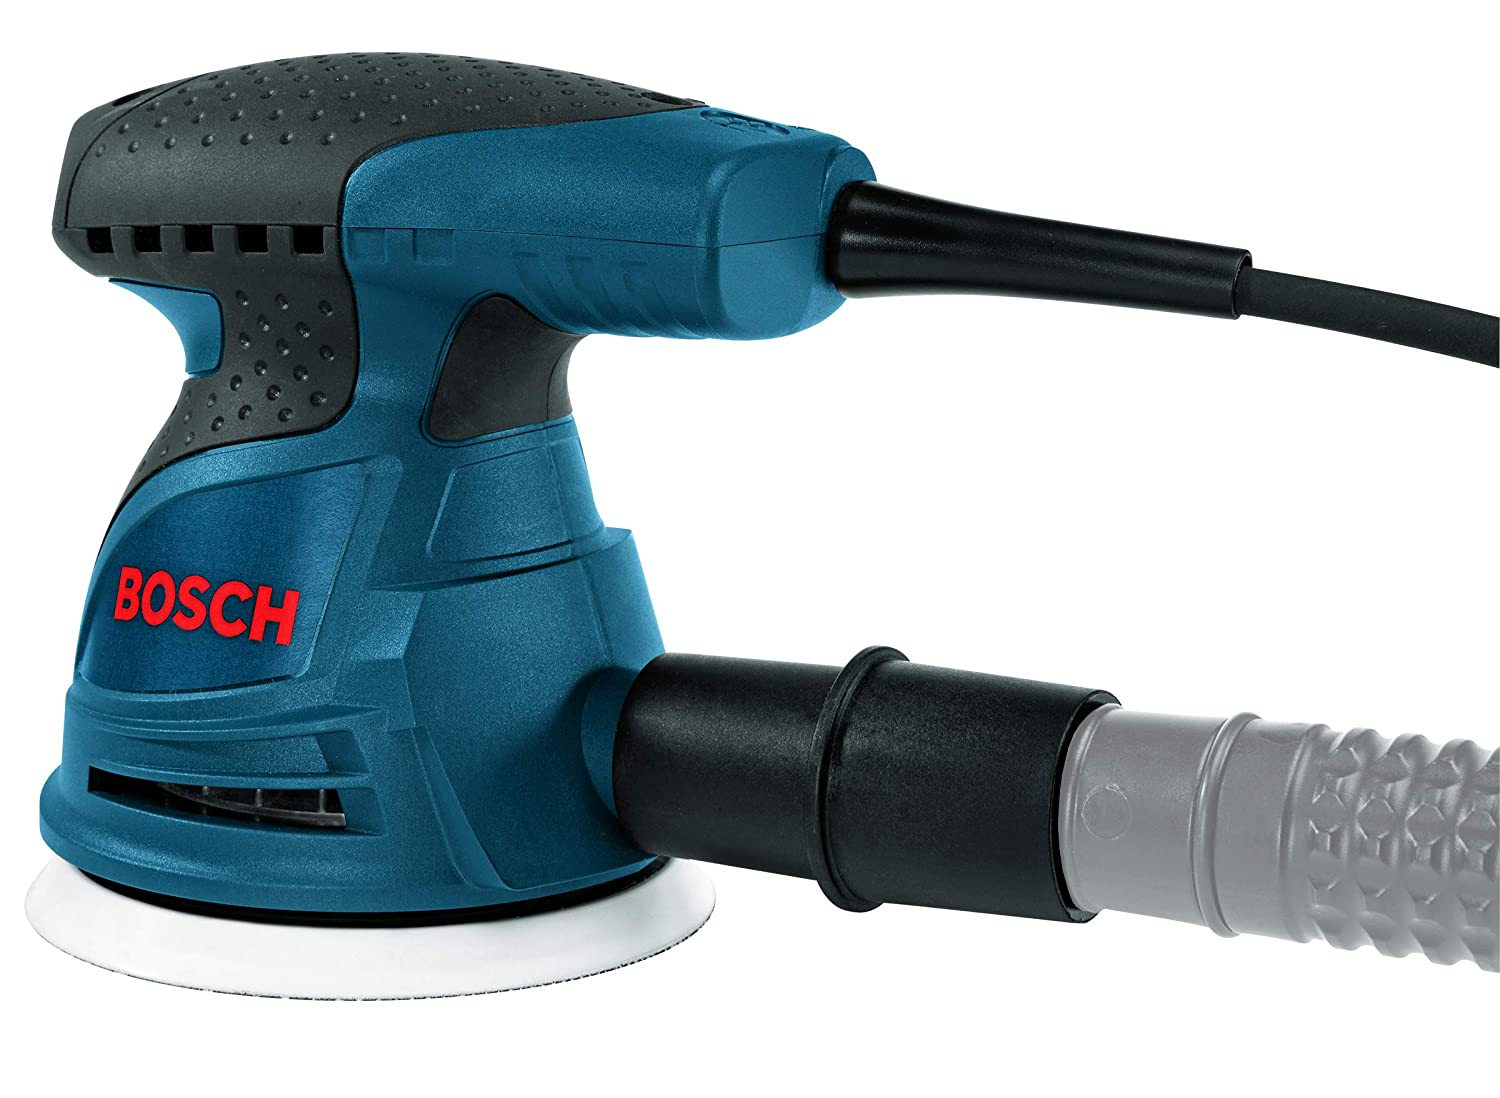 Bosch ROS20VSC featured image 4